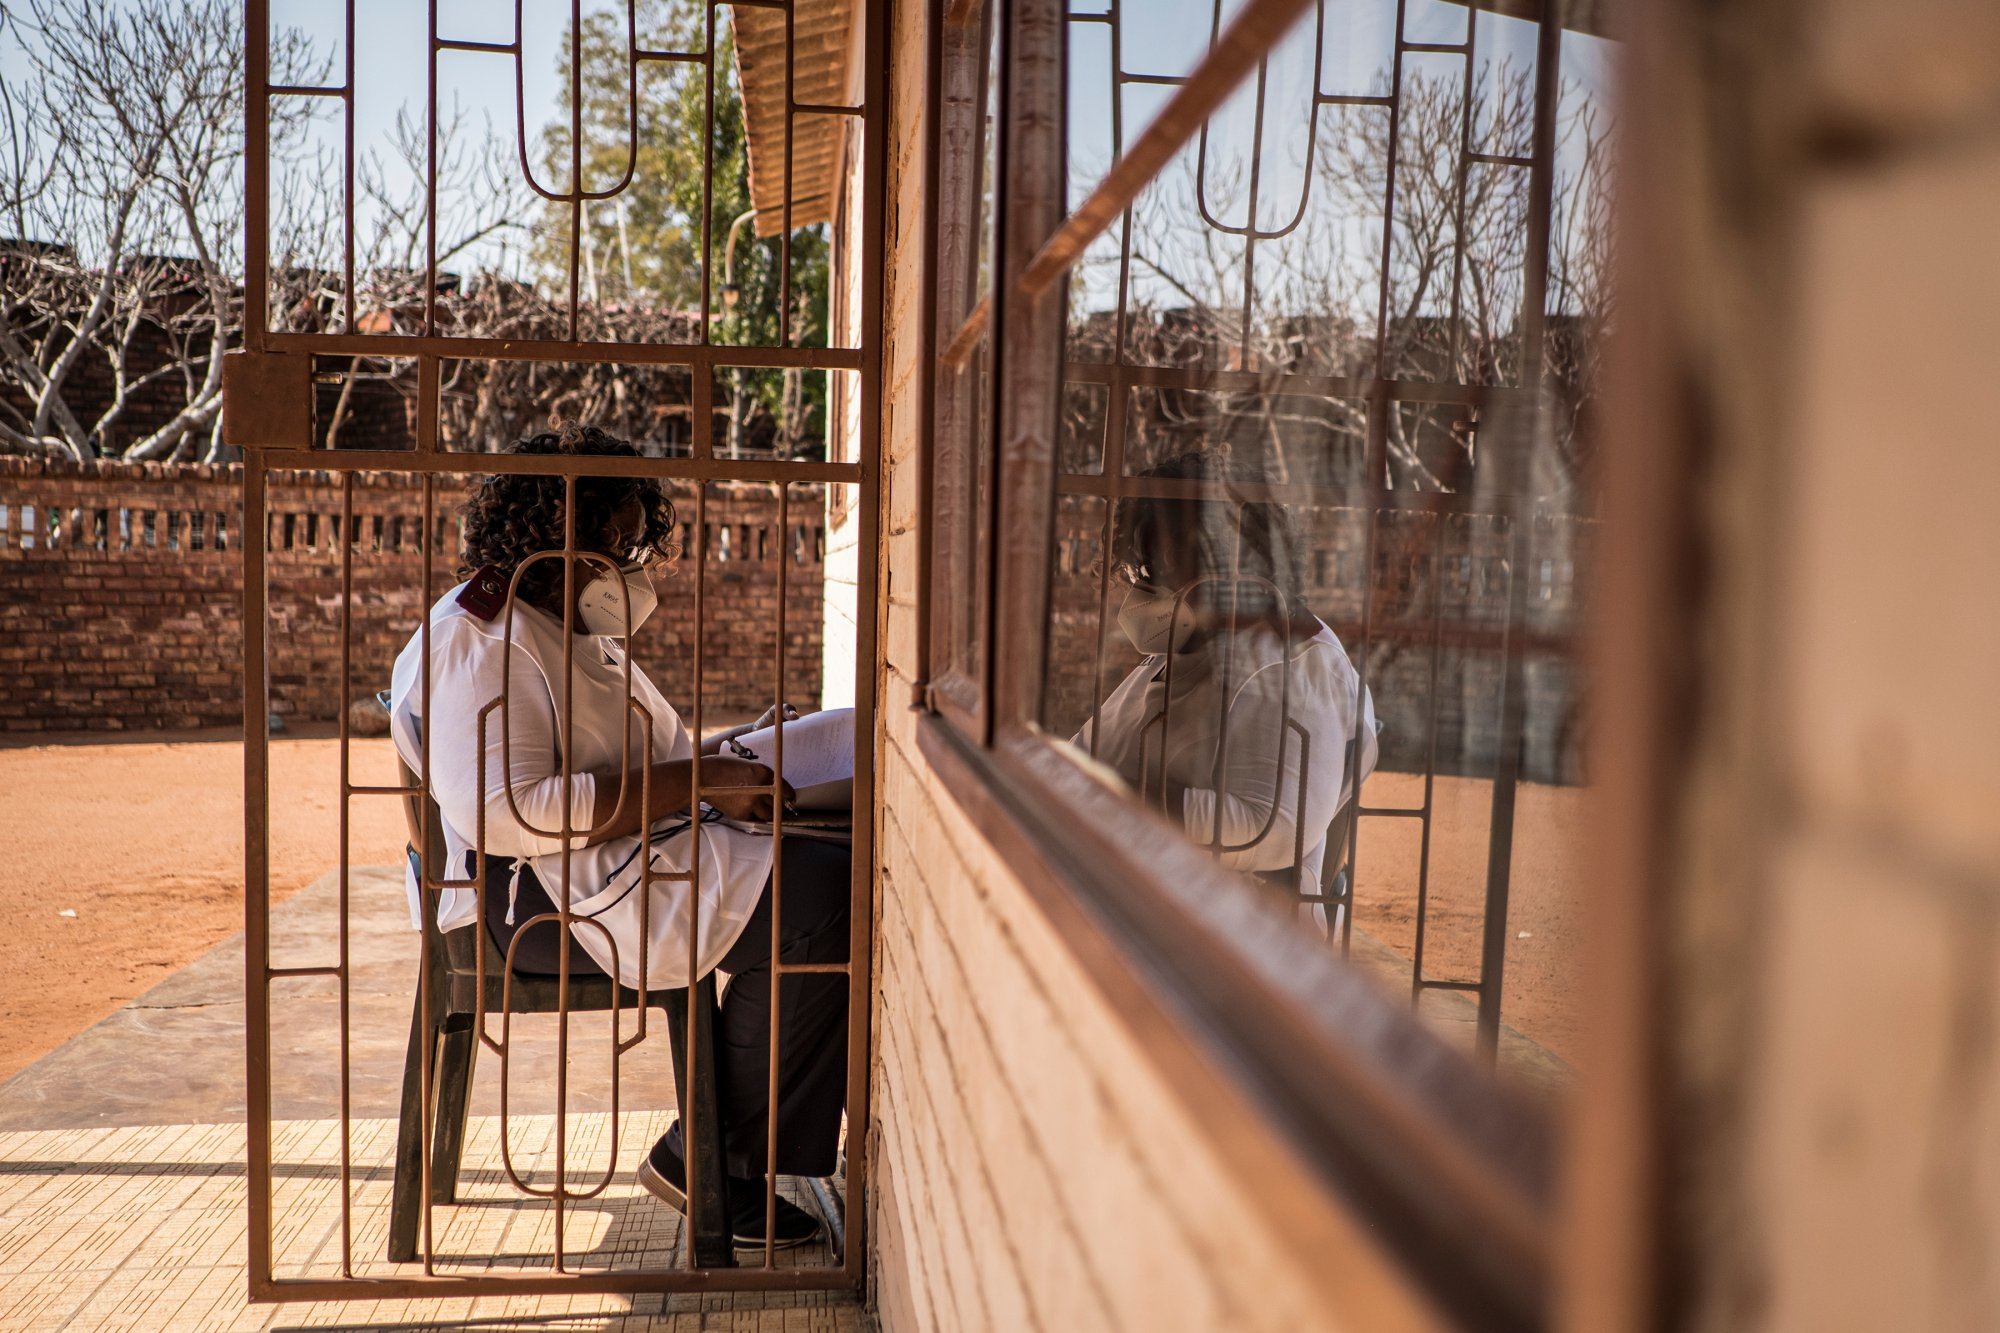 Sister Rachel Asitile (61) is pictured sitting, in accordance with social distancing measures, outside the home of a patient who tested positive for COVID-19 to do a follow up assessment.   Thomson Reuters Foundation/Gulshan Khan